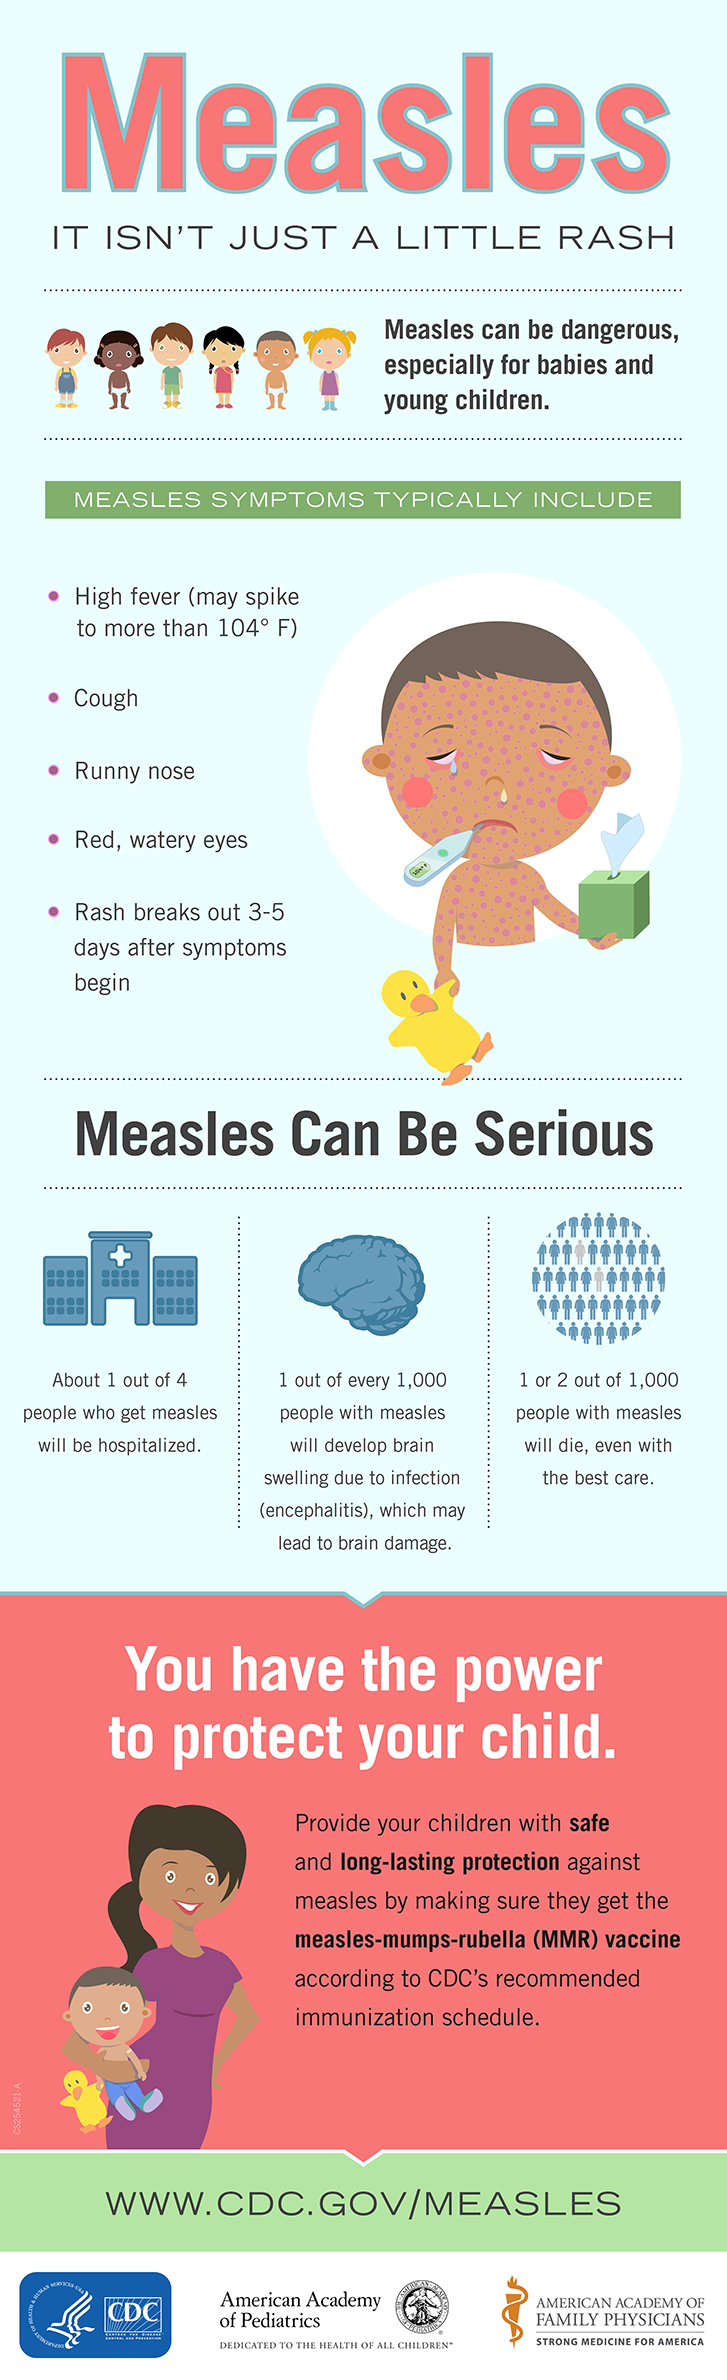 Centers for Disease Control and Prevention The symptoms of measles can resemble those seen in other illnesses.